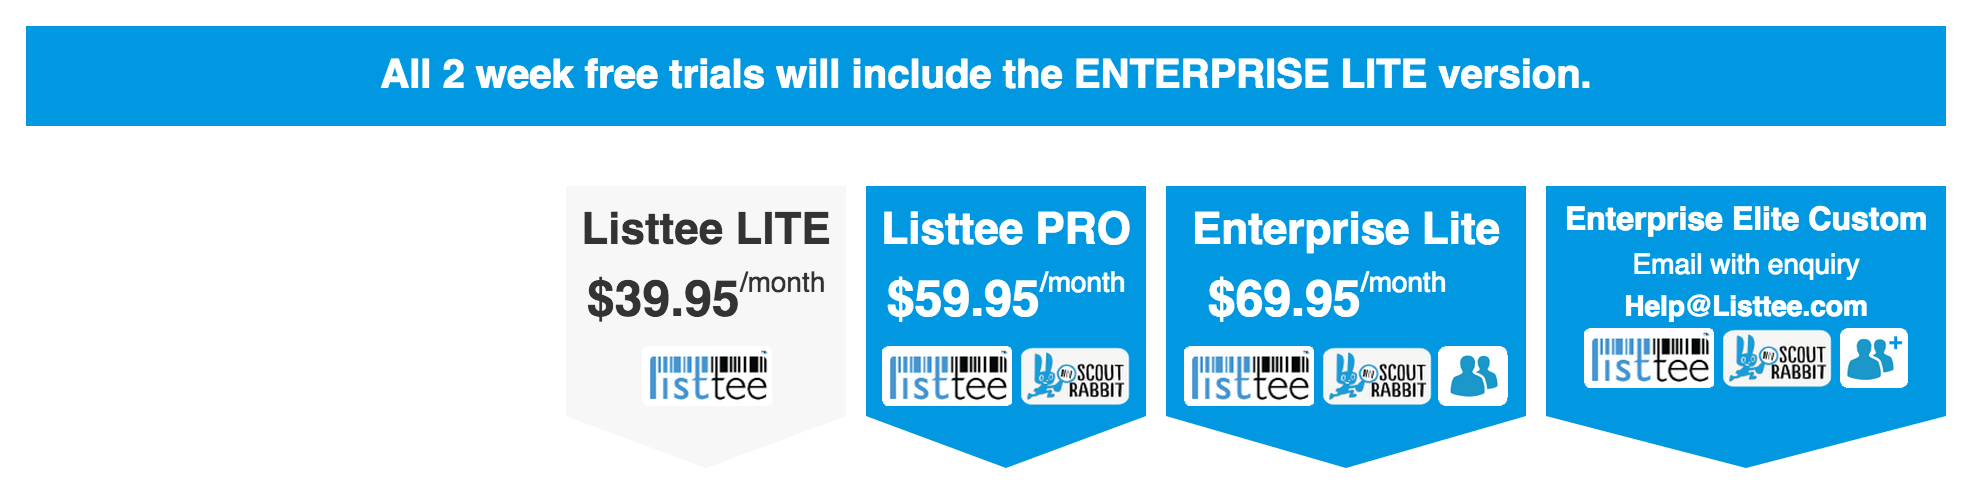 Listtee.com Pricing